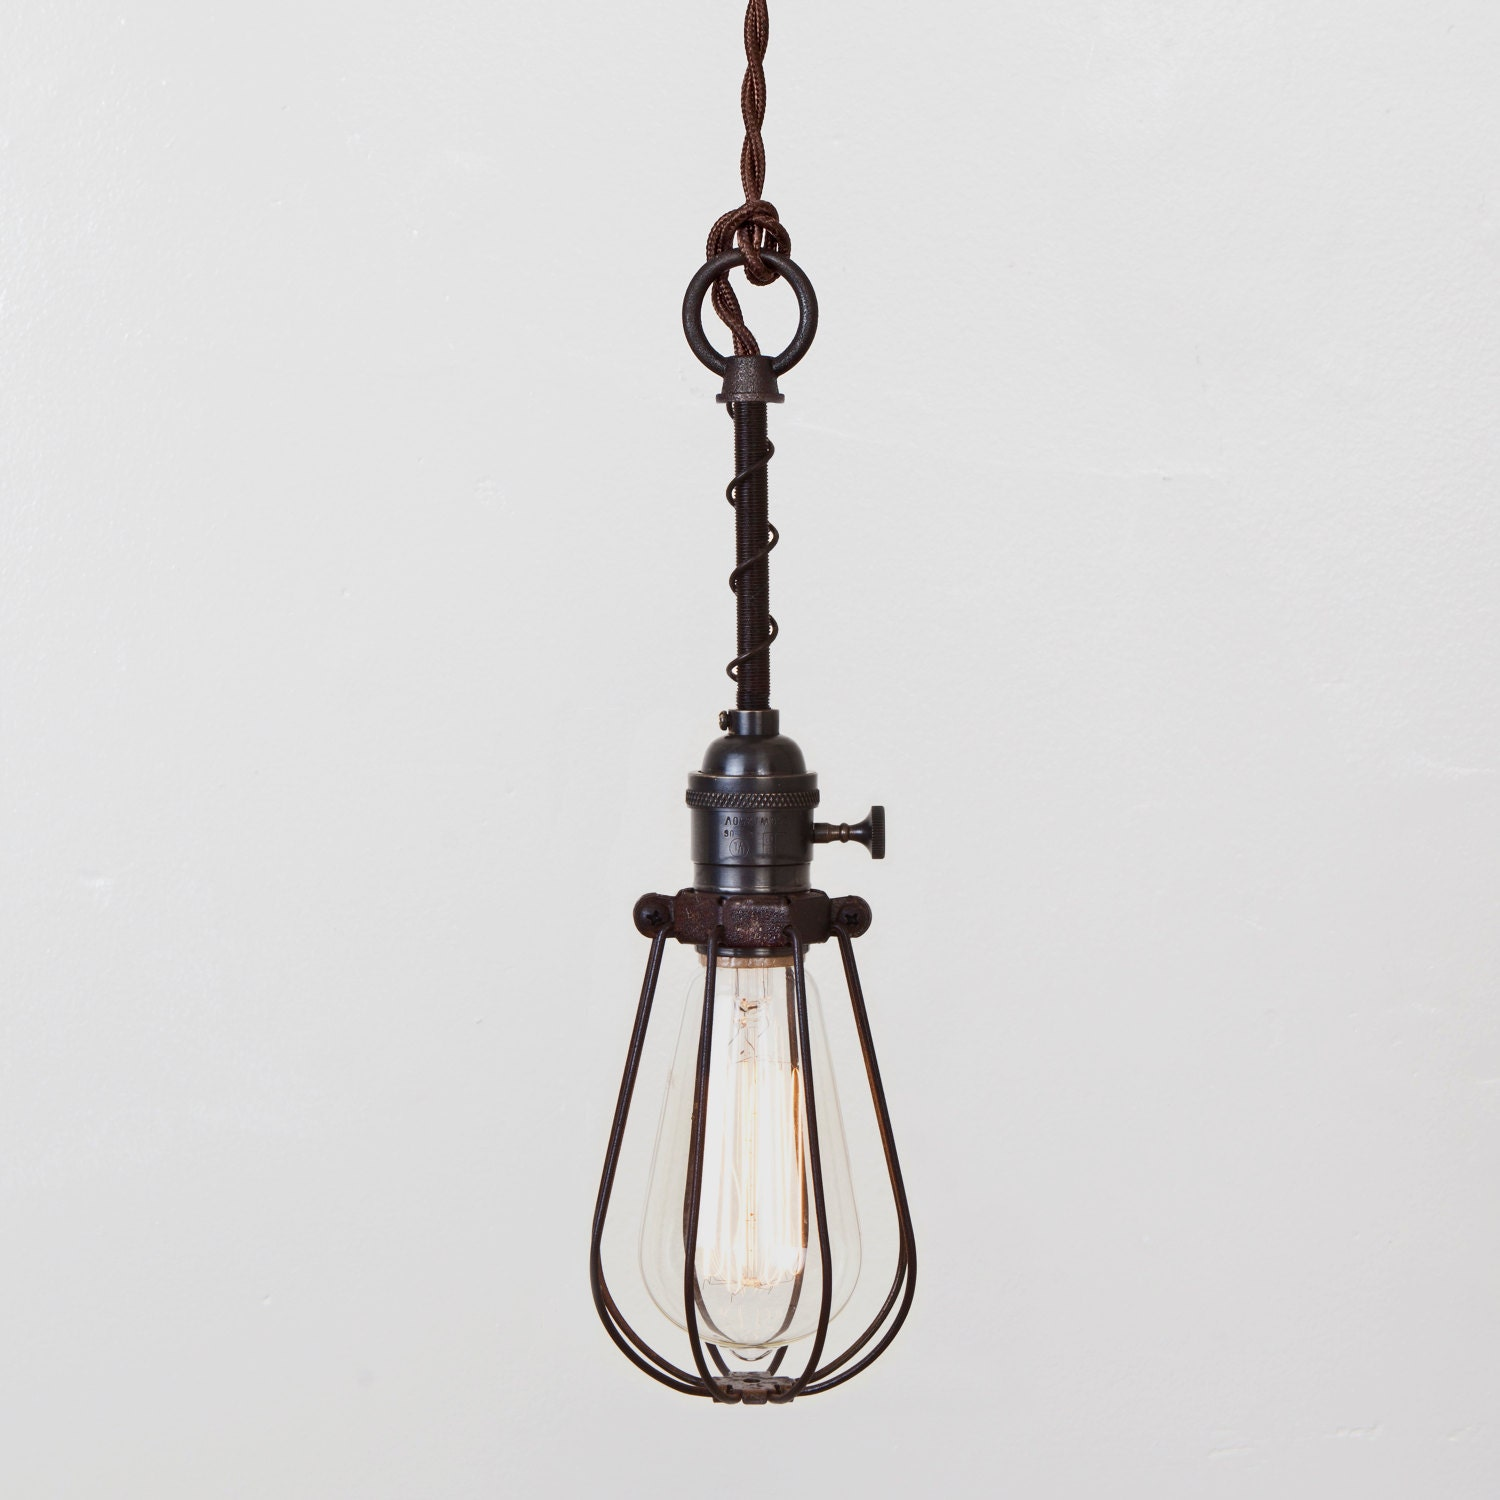 Pendant Lighting Industrial Pendant Light Restaurant